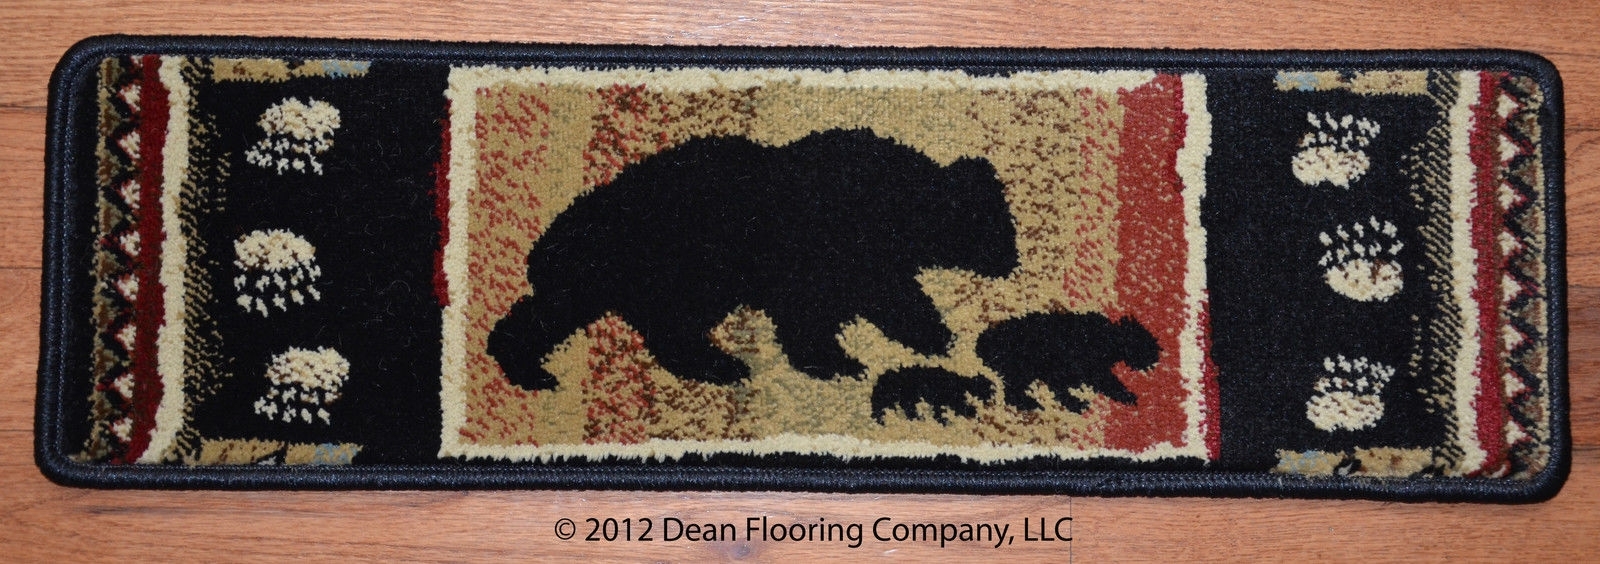 Inspiration About Dean Premium Carpet Stair Treads Rugs Black Bear Cabin  Lodge In Premium Carpet Stair